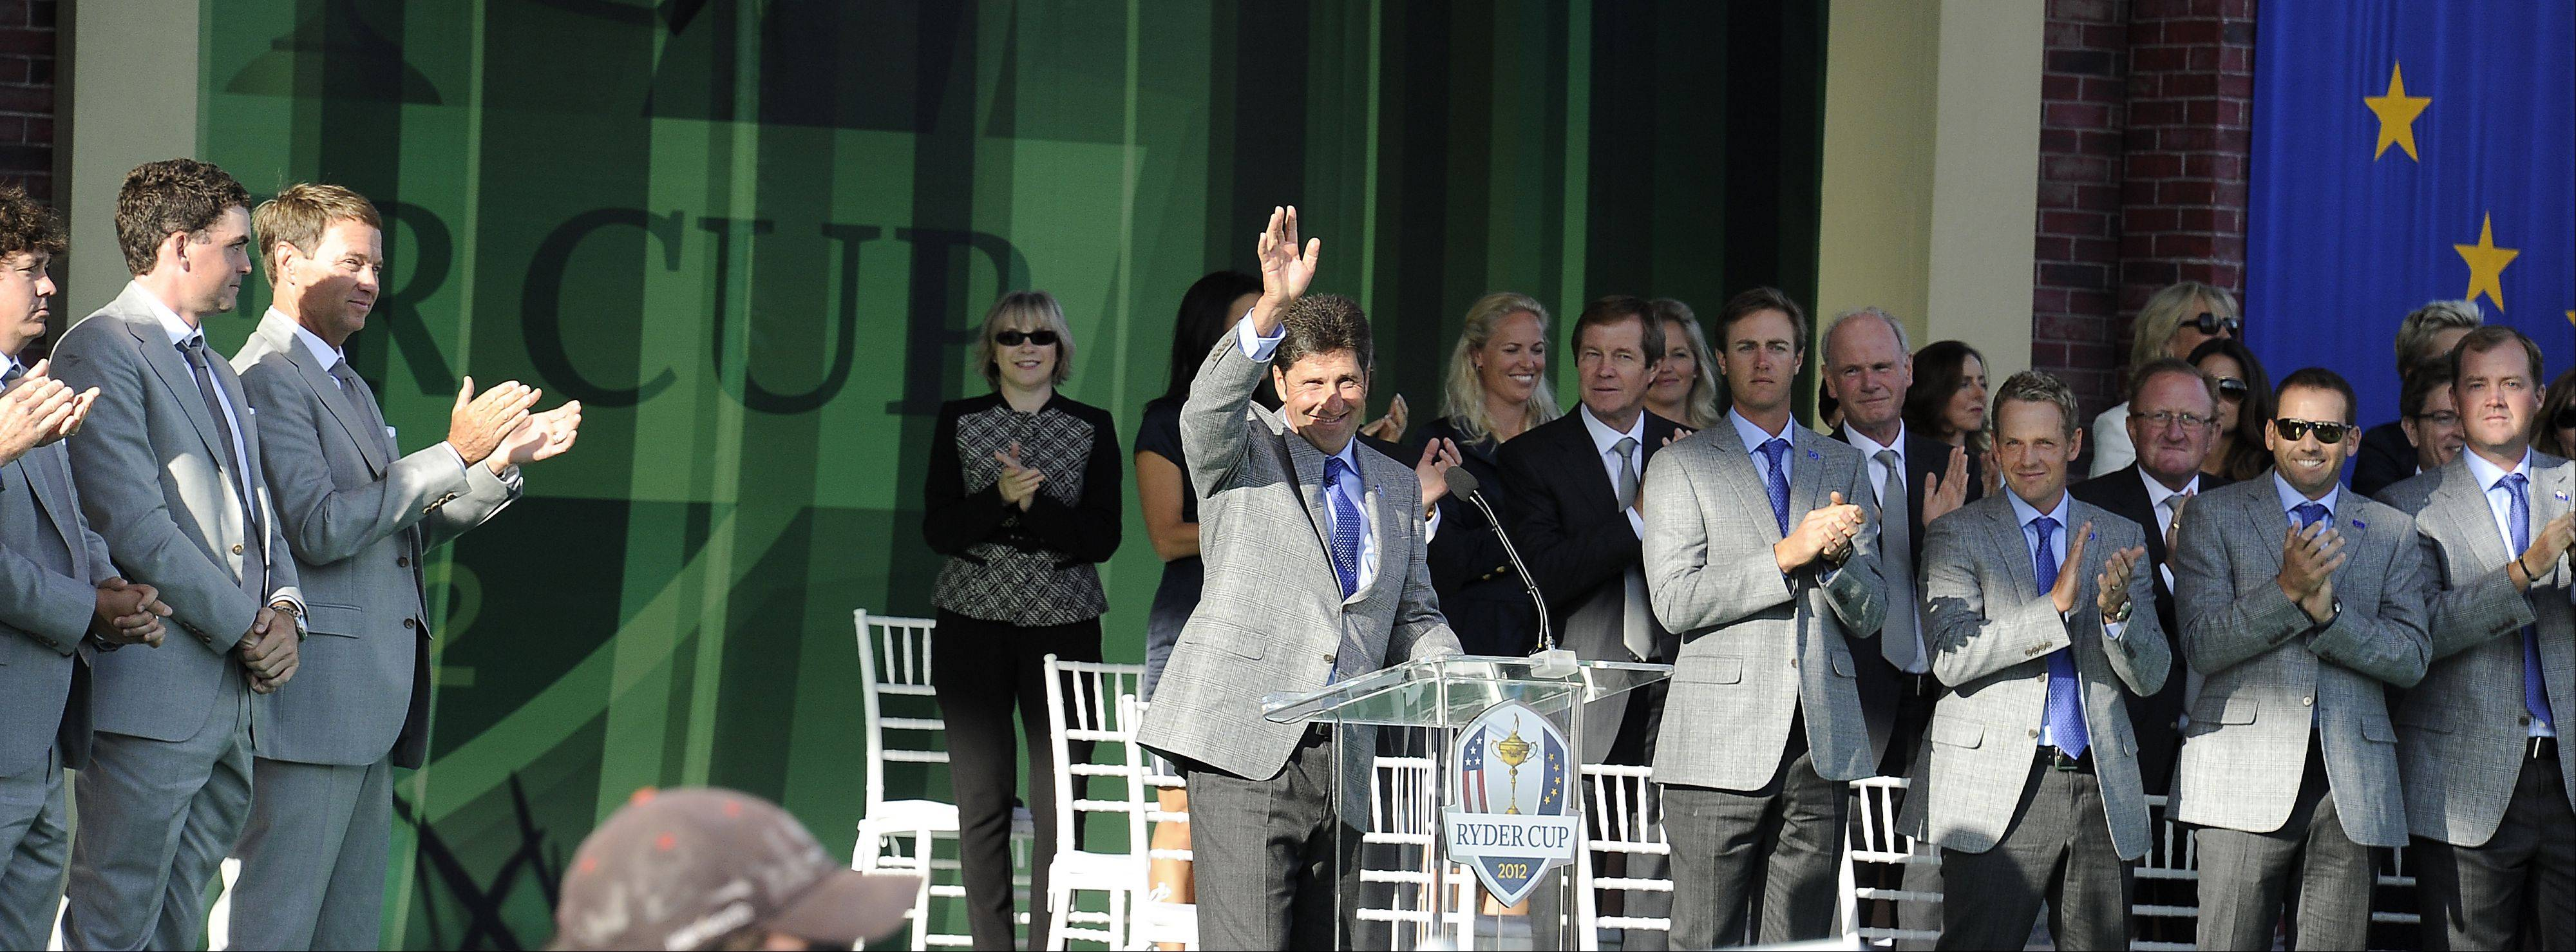 Team Europe's Jose Maria Olazabal waves to the crowd .